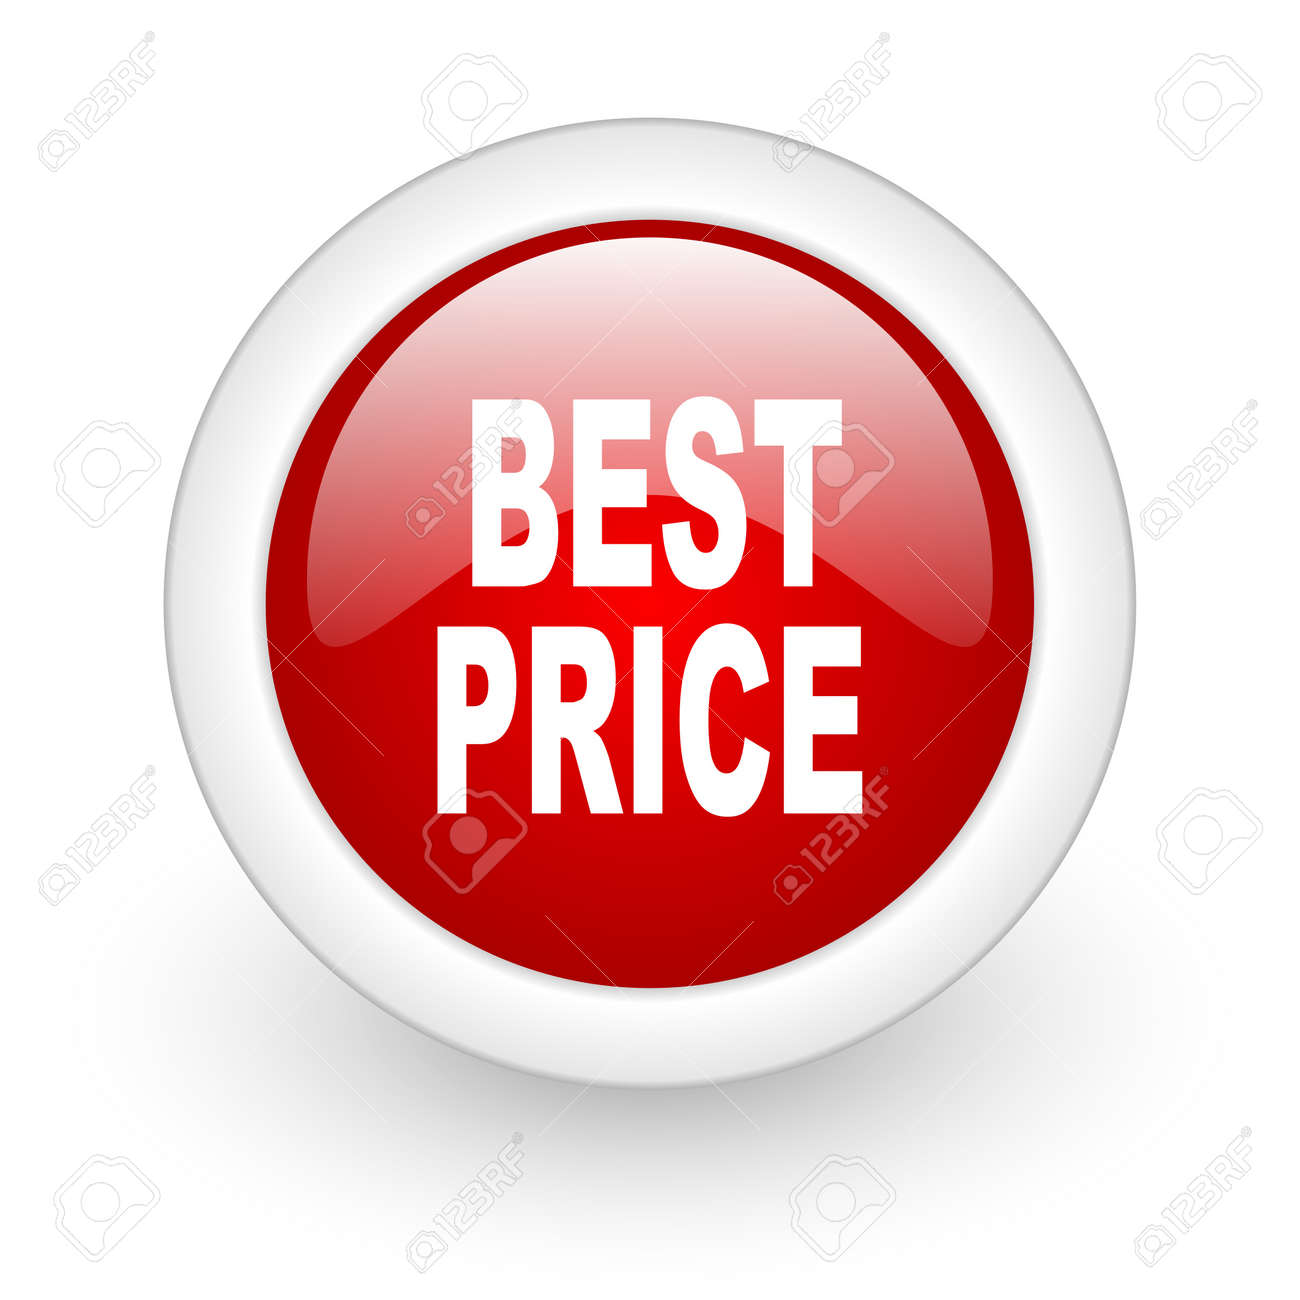 best price red circle glossy web icon on white background Stock Photo - 17979916